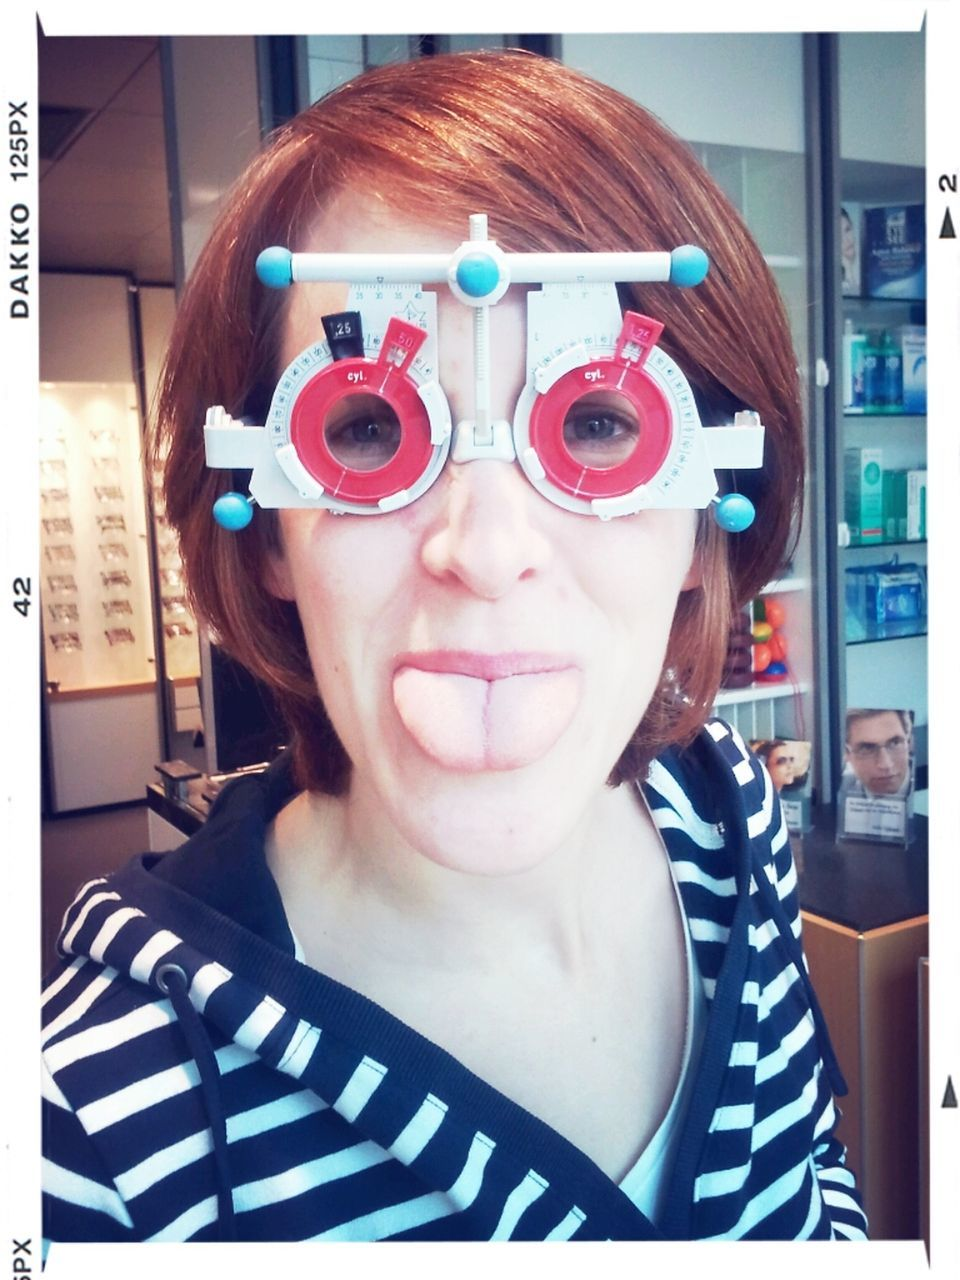 Portrait Of Woman Wearing Eye Test Equipment At Clinic